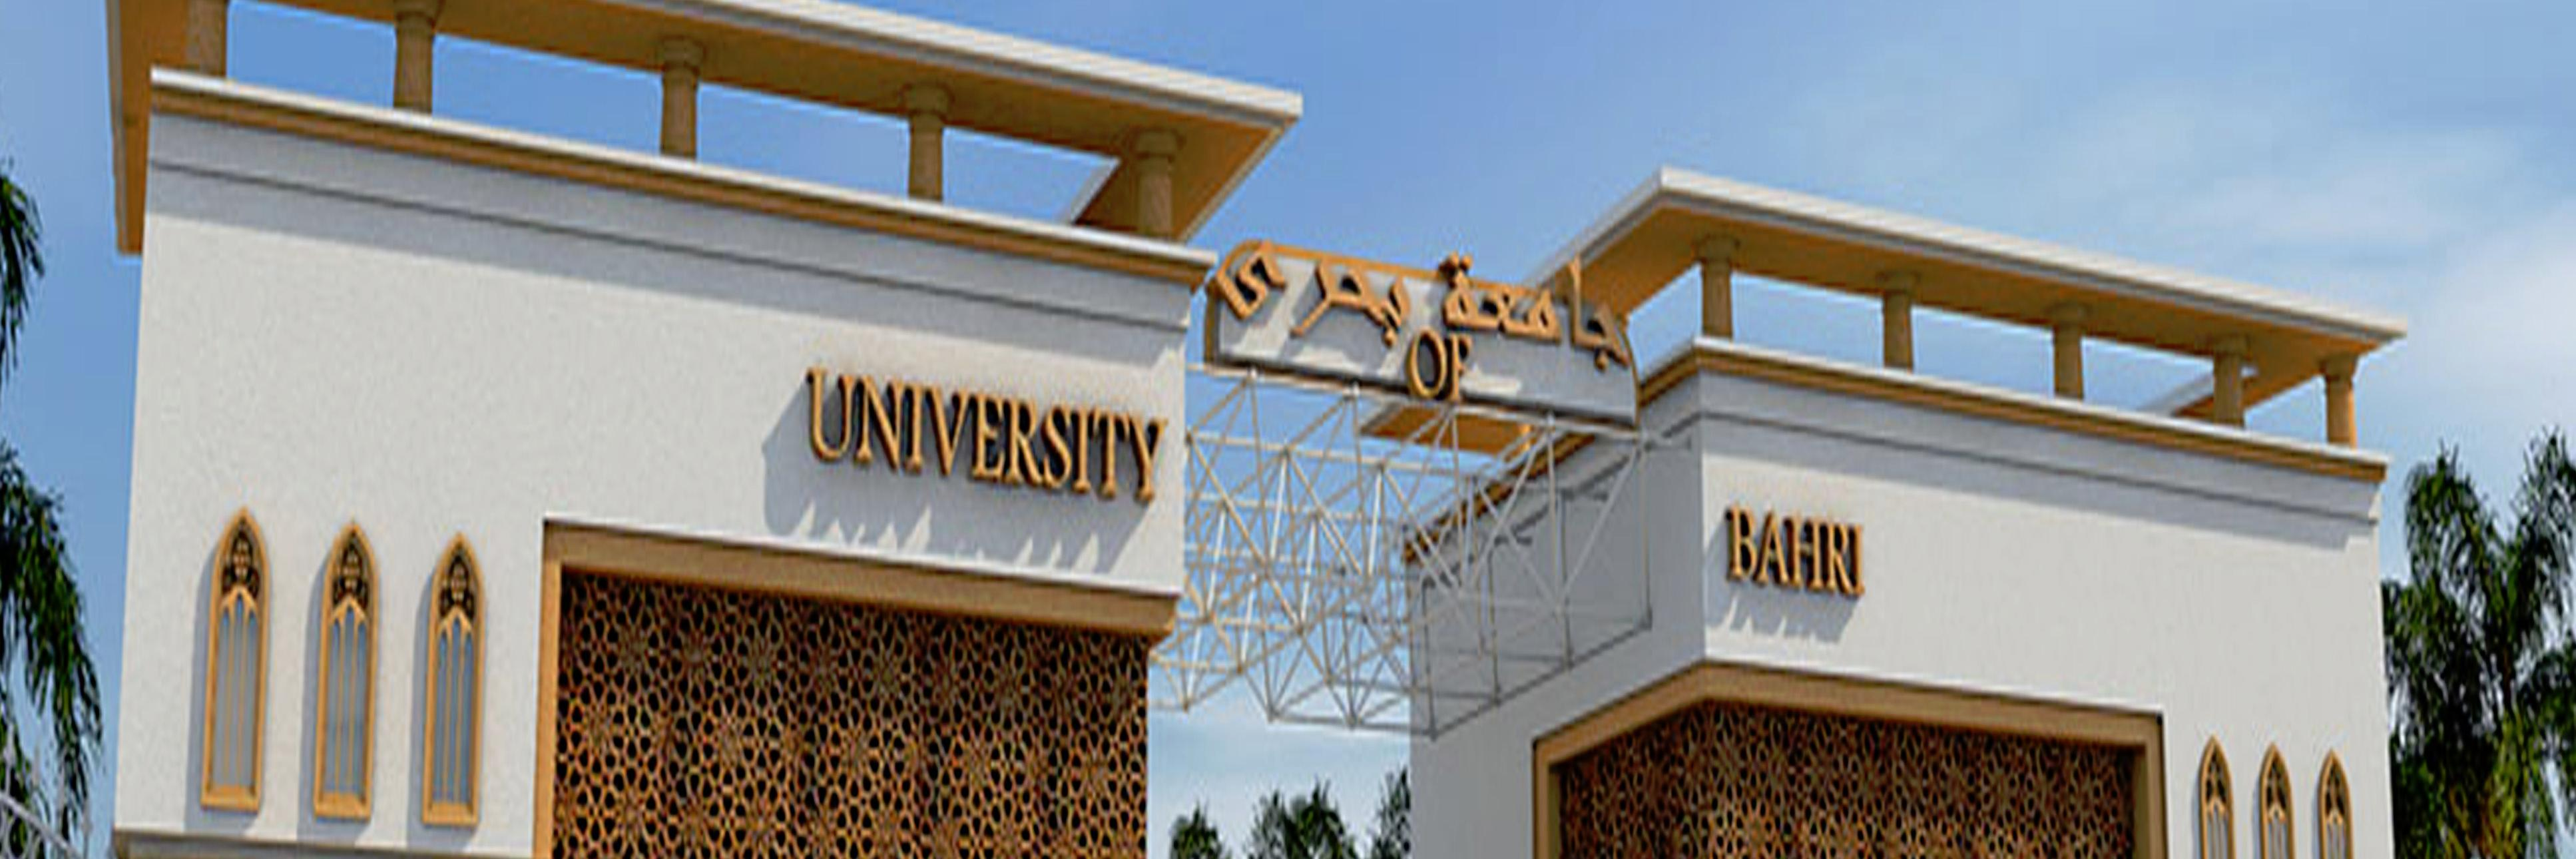 University of Bahri's official Twitter account